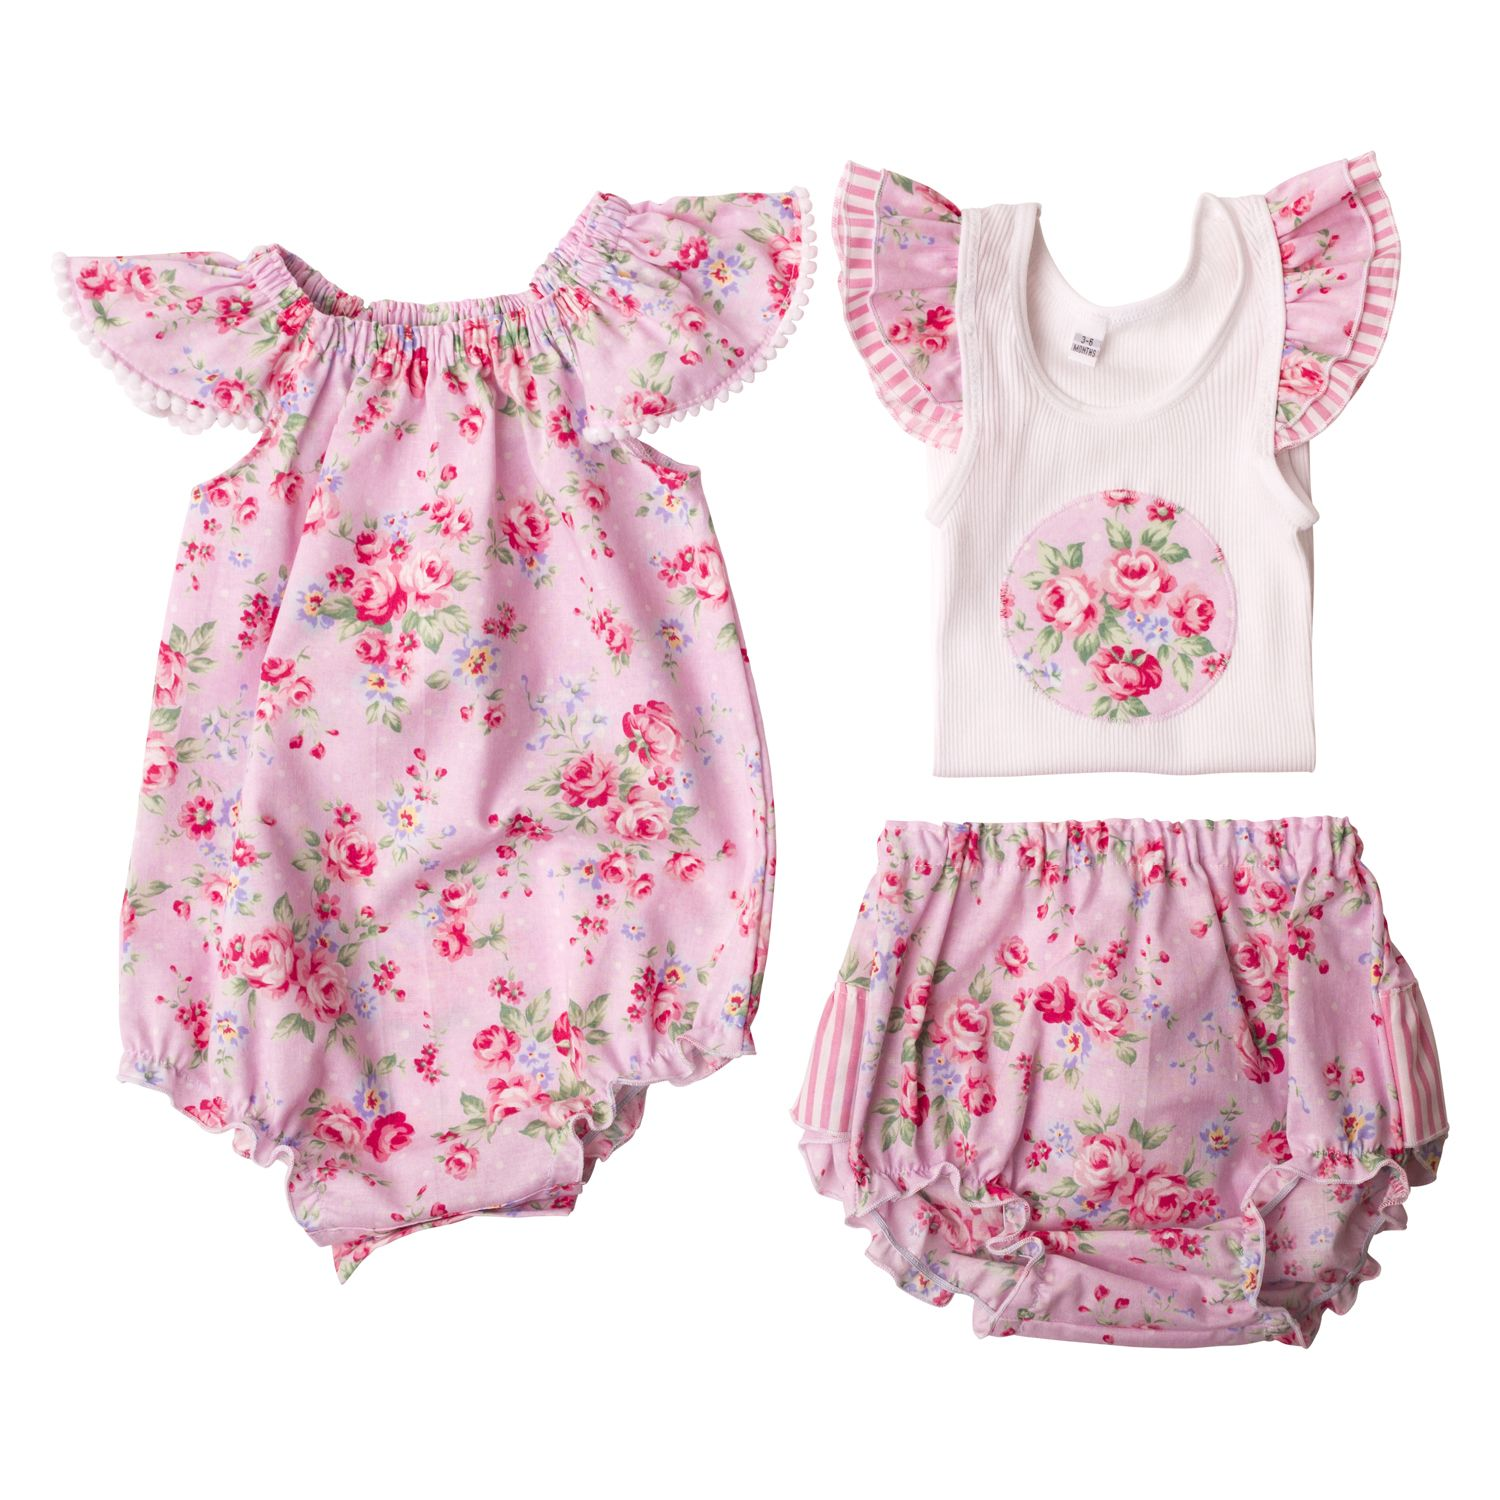 Girls Flat Lay Collection Pink Summer Floral